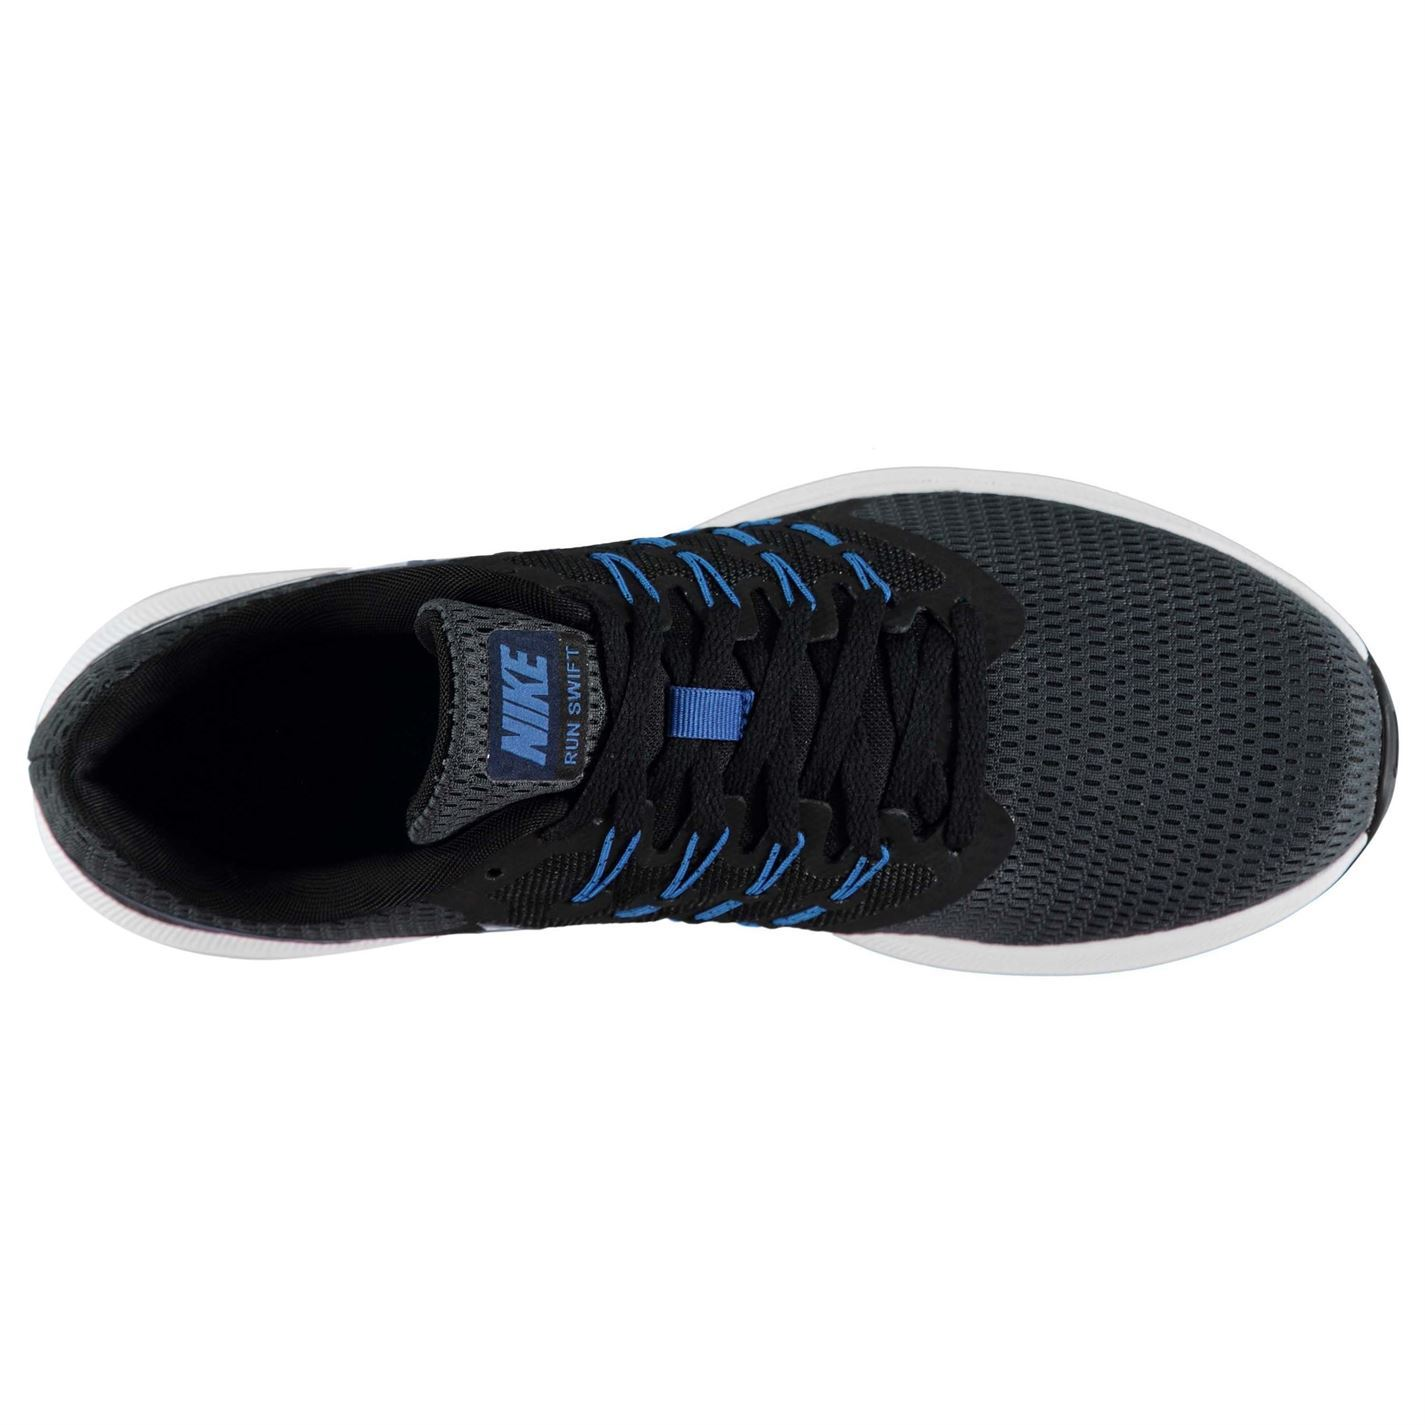 huge discount aad8f 1df9d ... Nike Run Swift Runners Running Shoes Mens Anthracite Navy Trainers  Sneakers